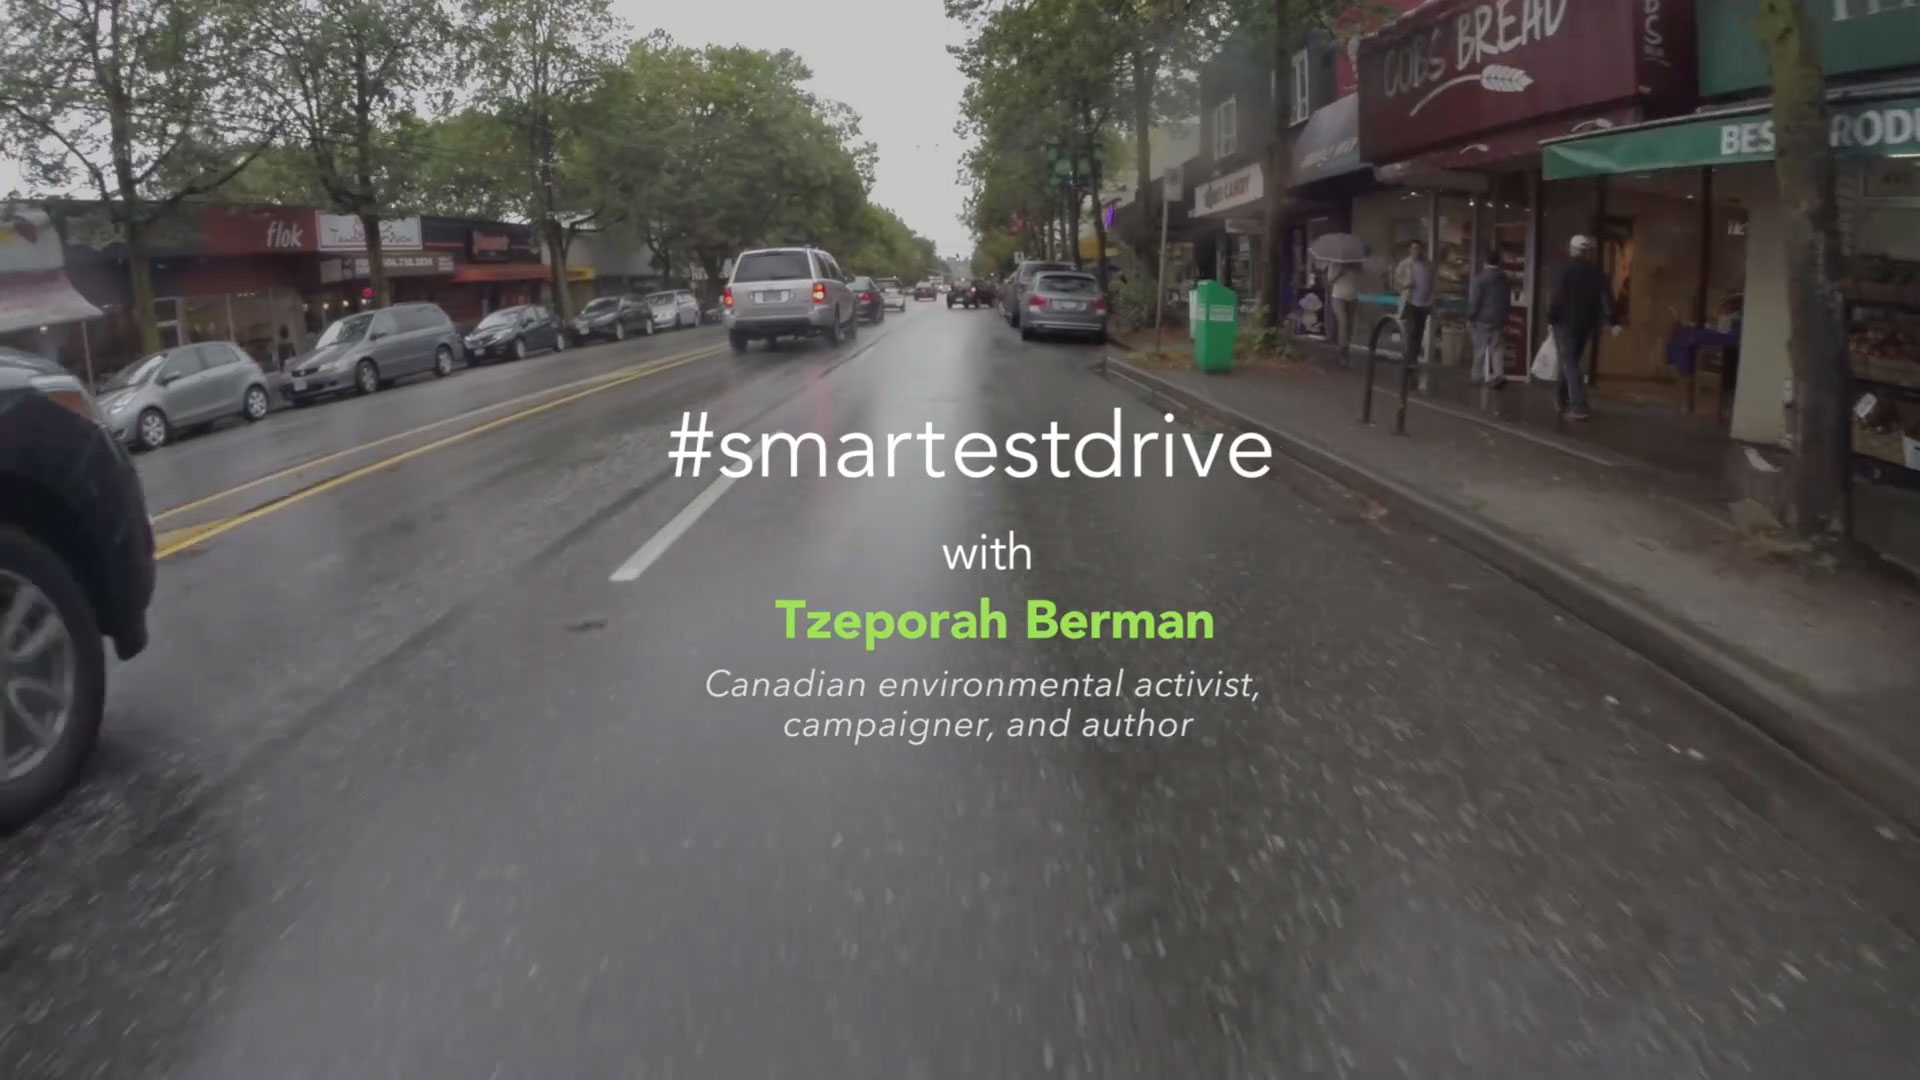 #smartestdrive with Tzeporah Berman Canadian environmental activist, campaigner, and author